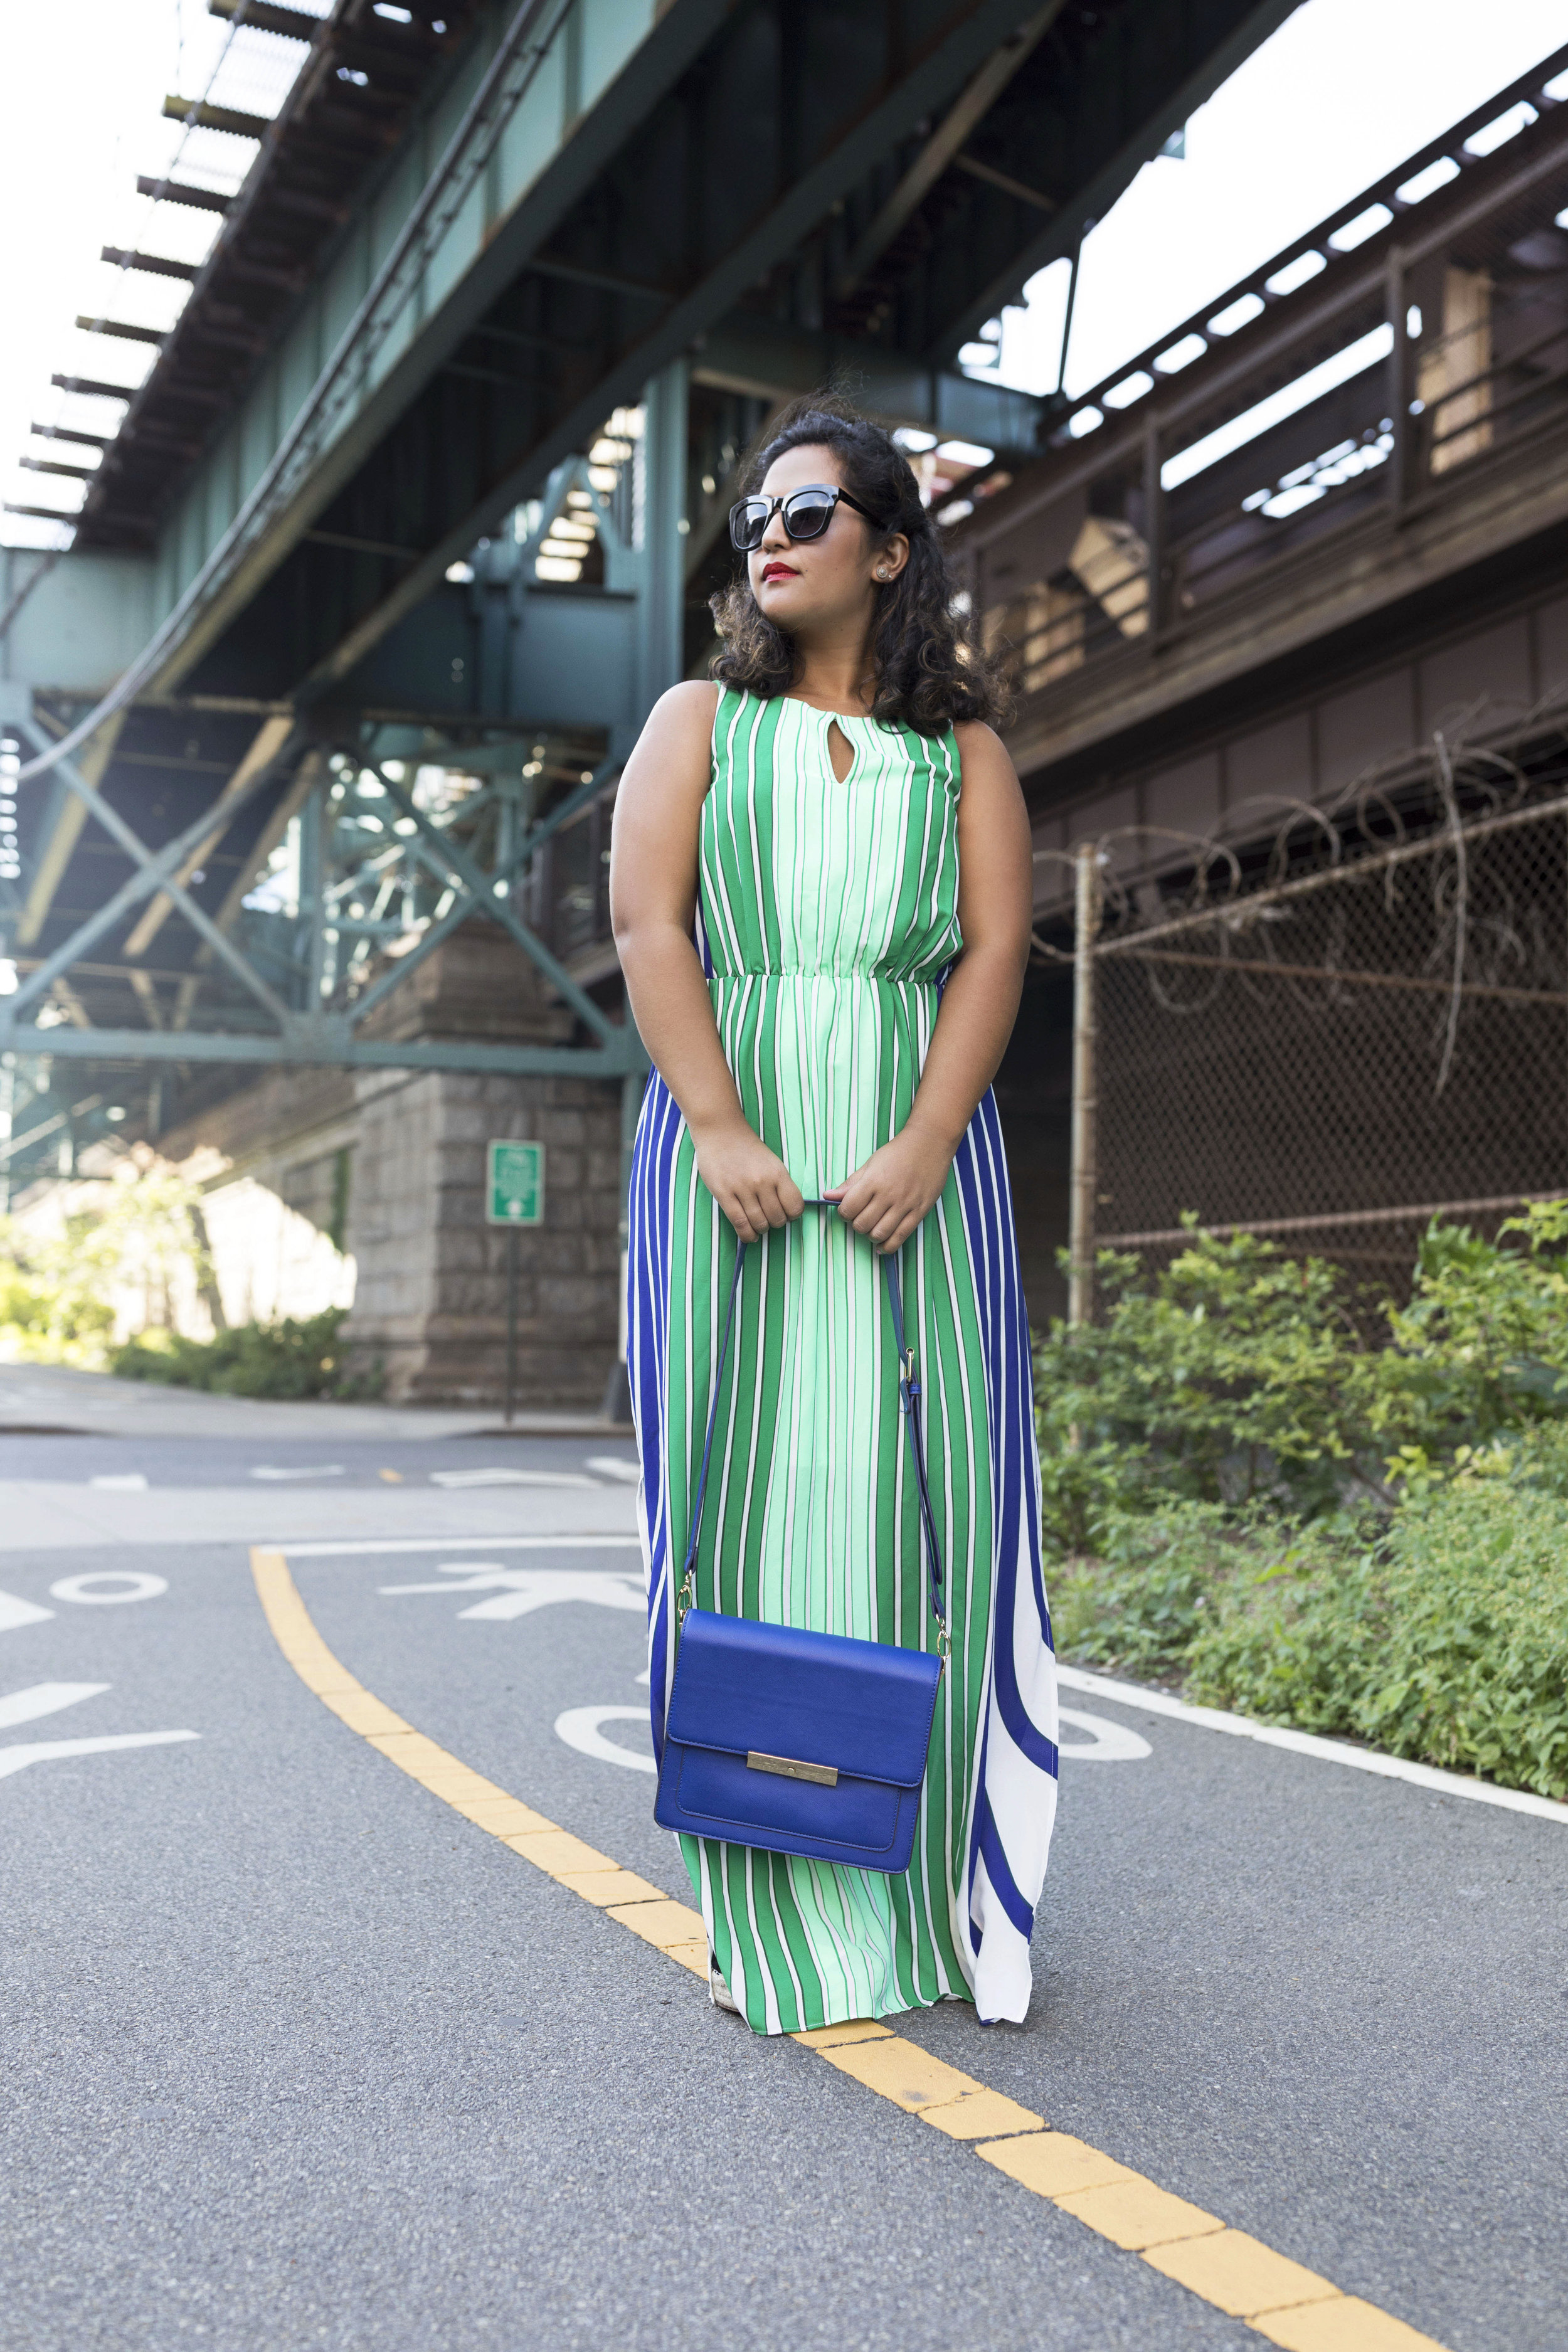 Krity S x Adrianna Papell x Stripped Maxi5.jpg